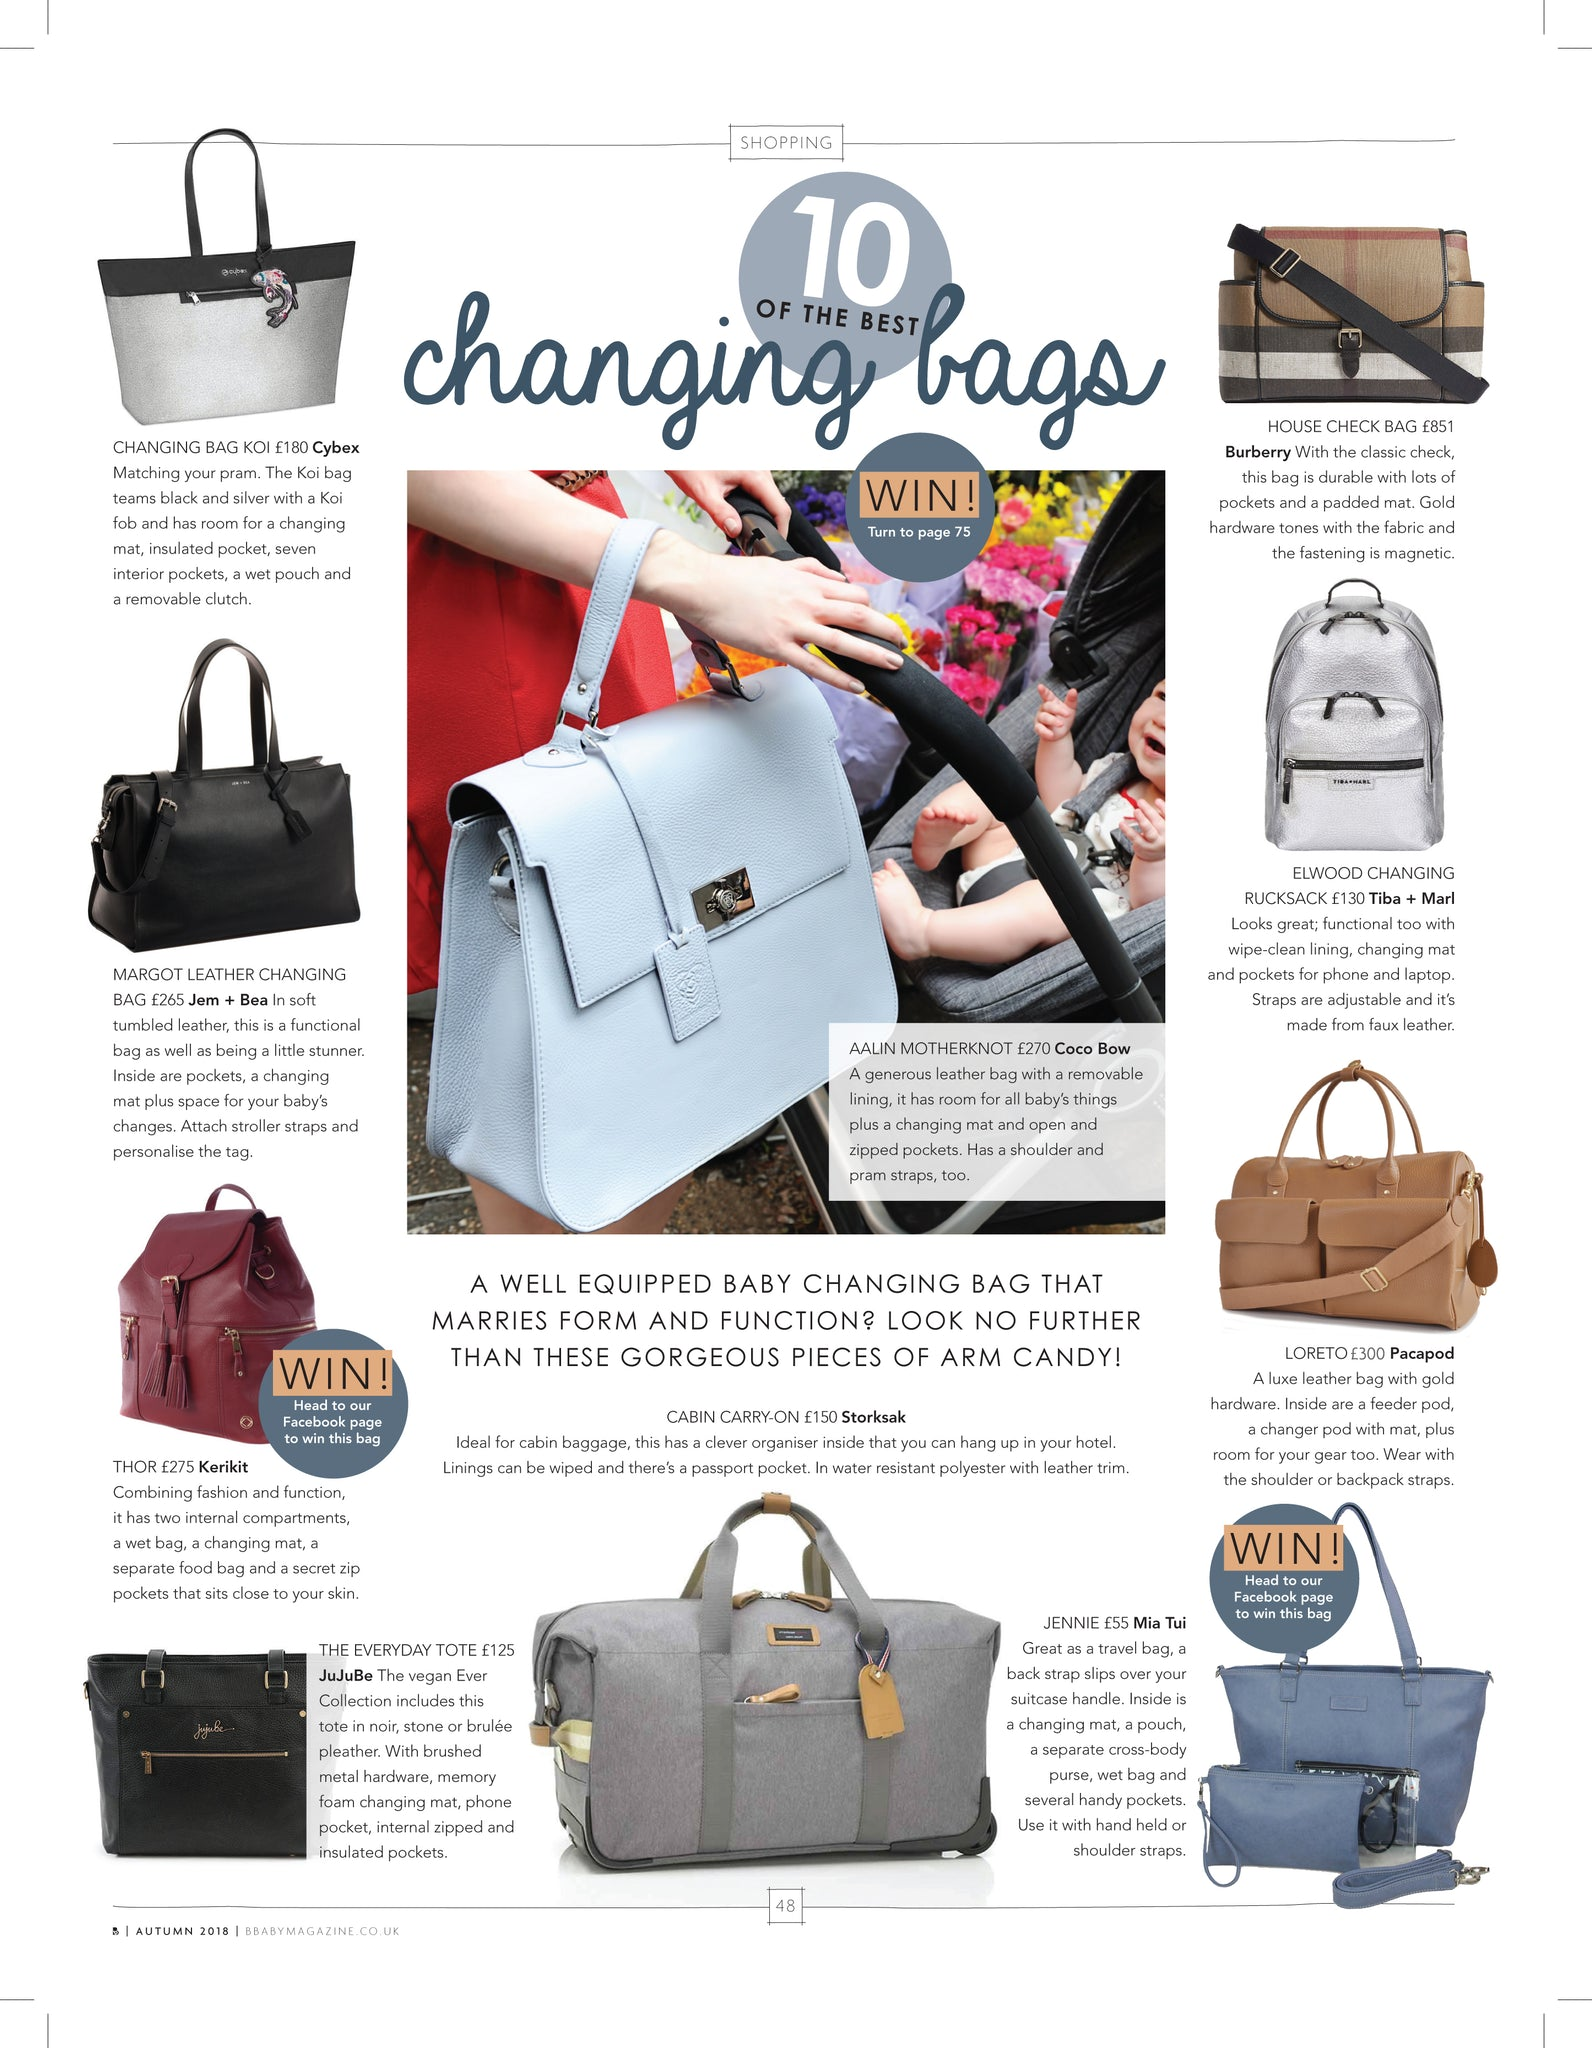 Loreto in B Baby Magazine's Top 10 changing bags